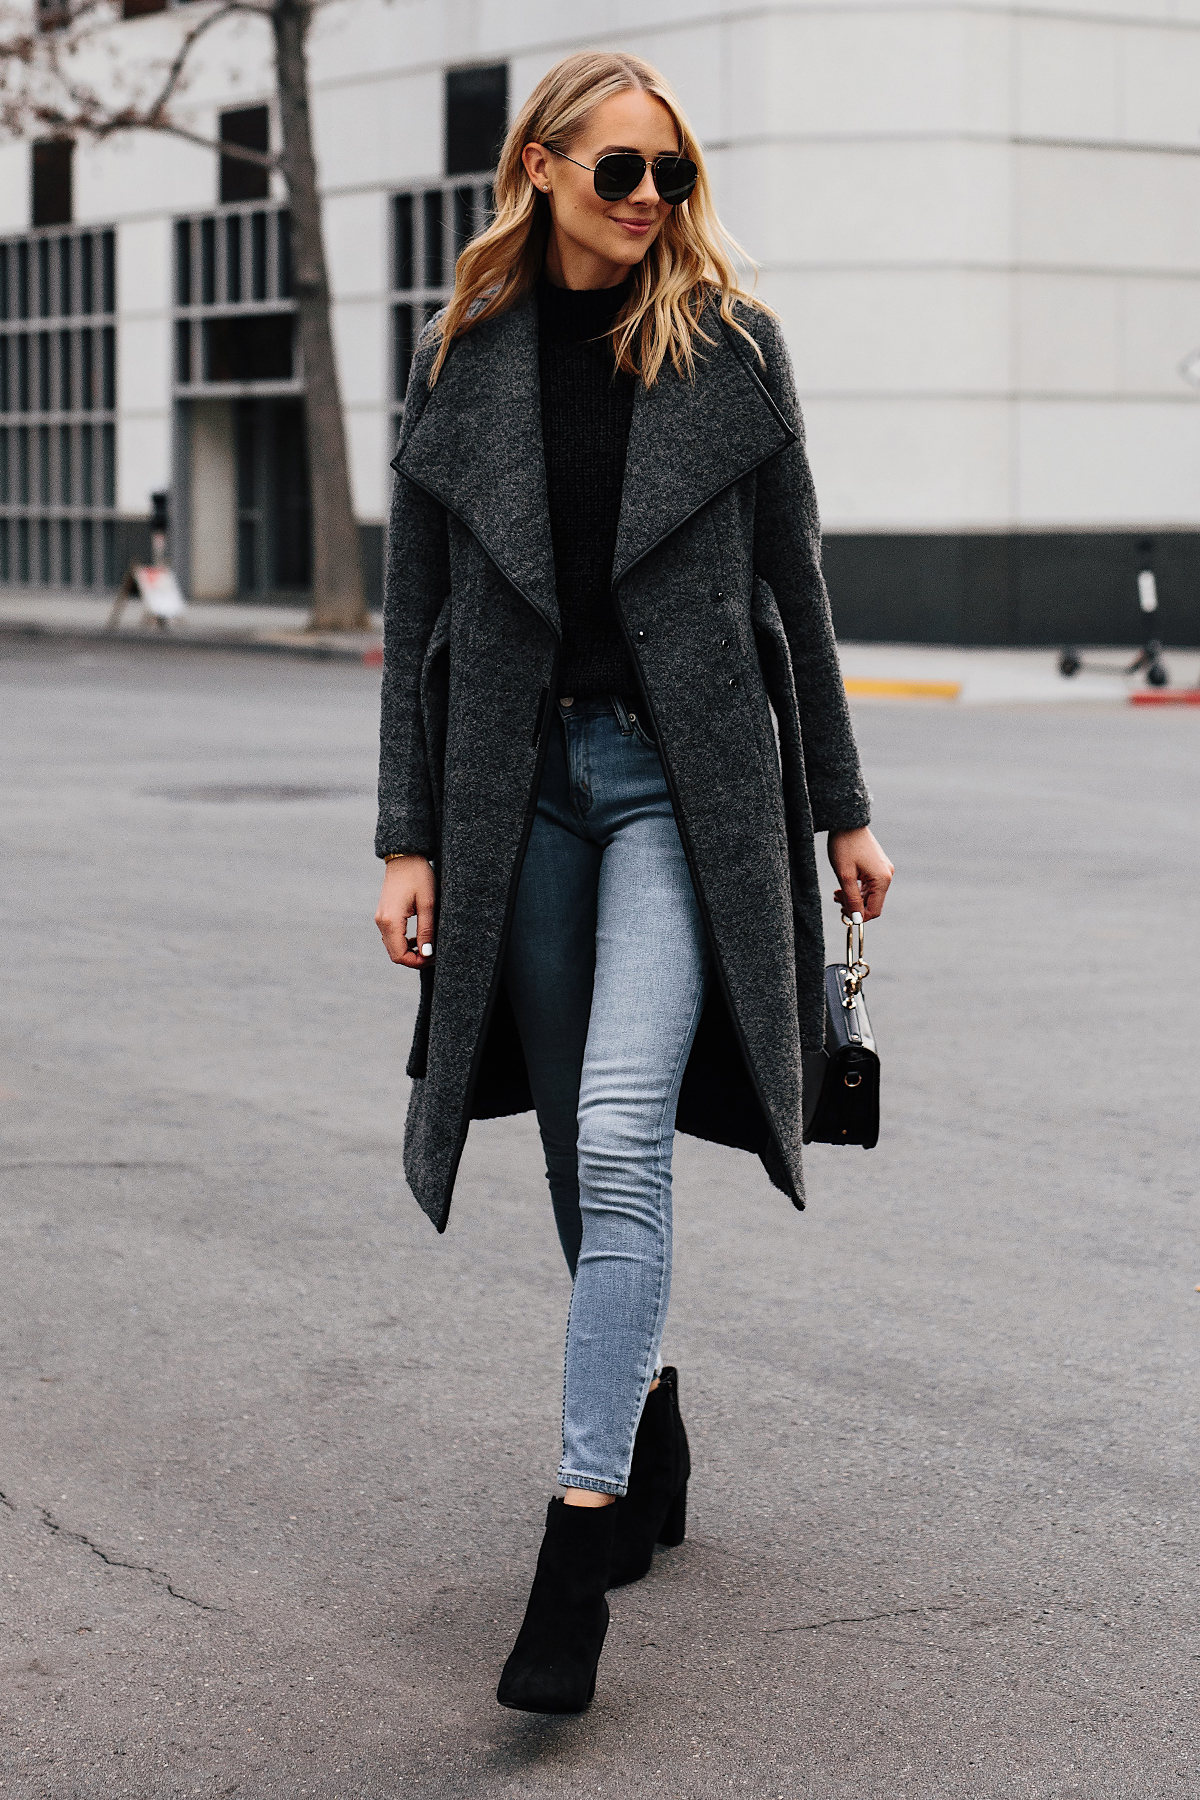 Blonde Woman Wearing Grey Wool Wrap Coat Black Sweater Denim Skinny Jeans Black Booties Outfit Fashion Jackson San Diego Fashion Blogger Street Style